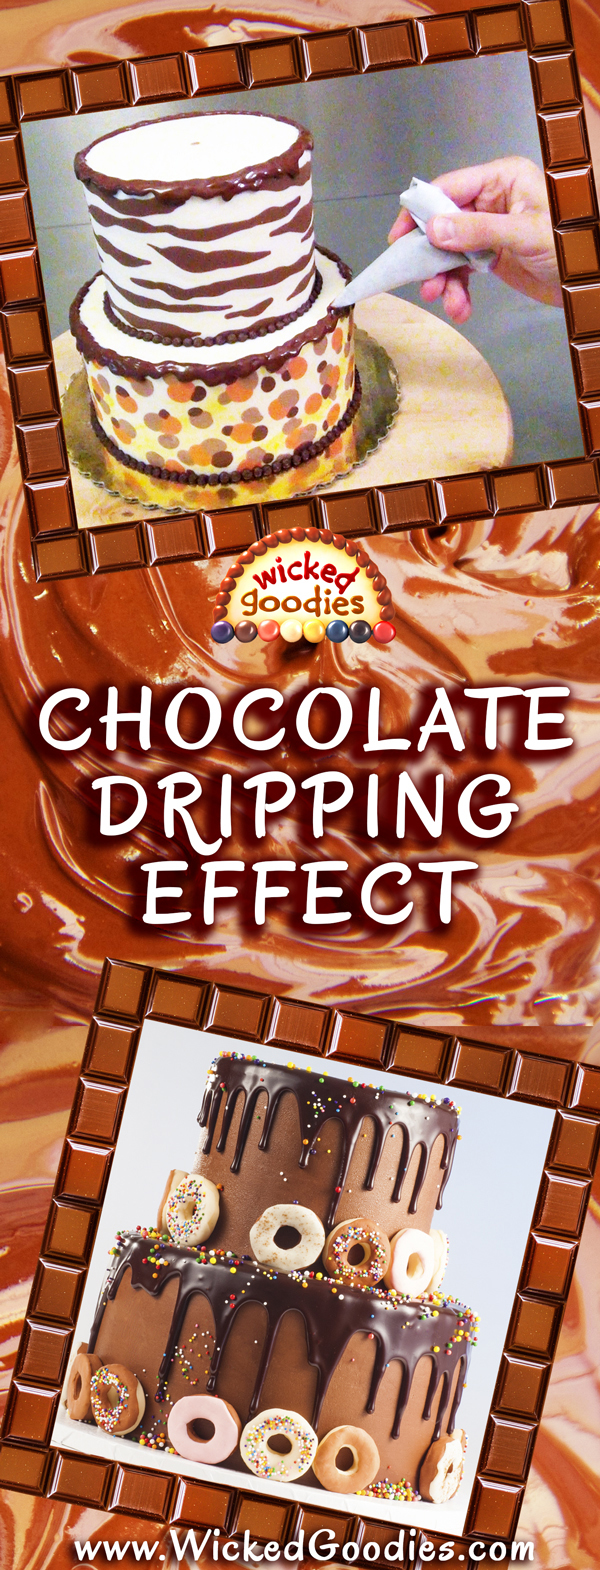 Chocolate Dripping Effect Tutorial